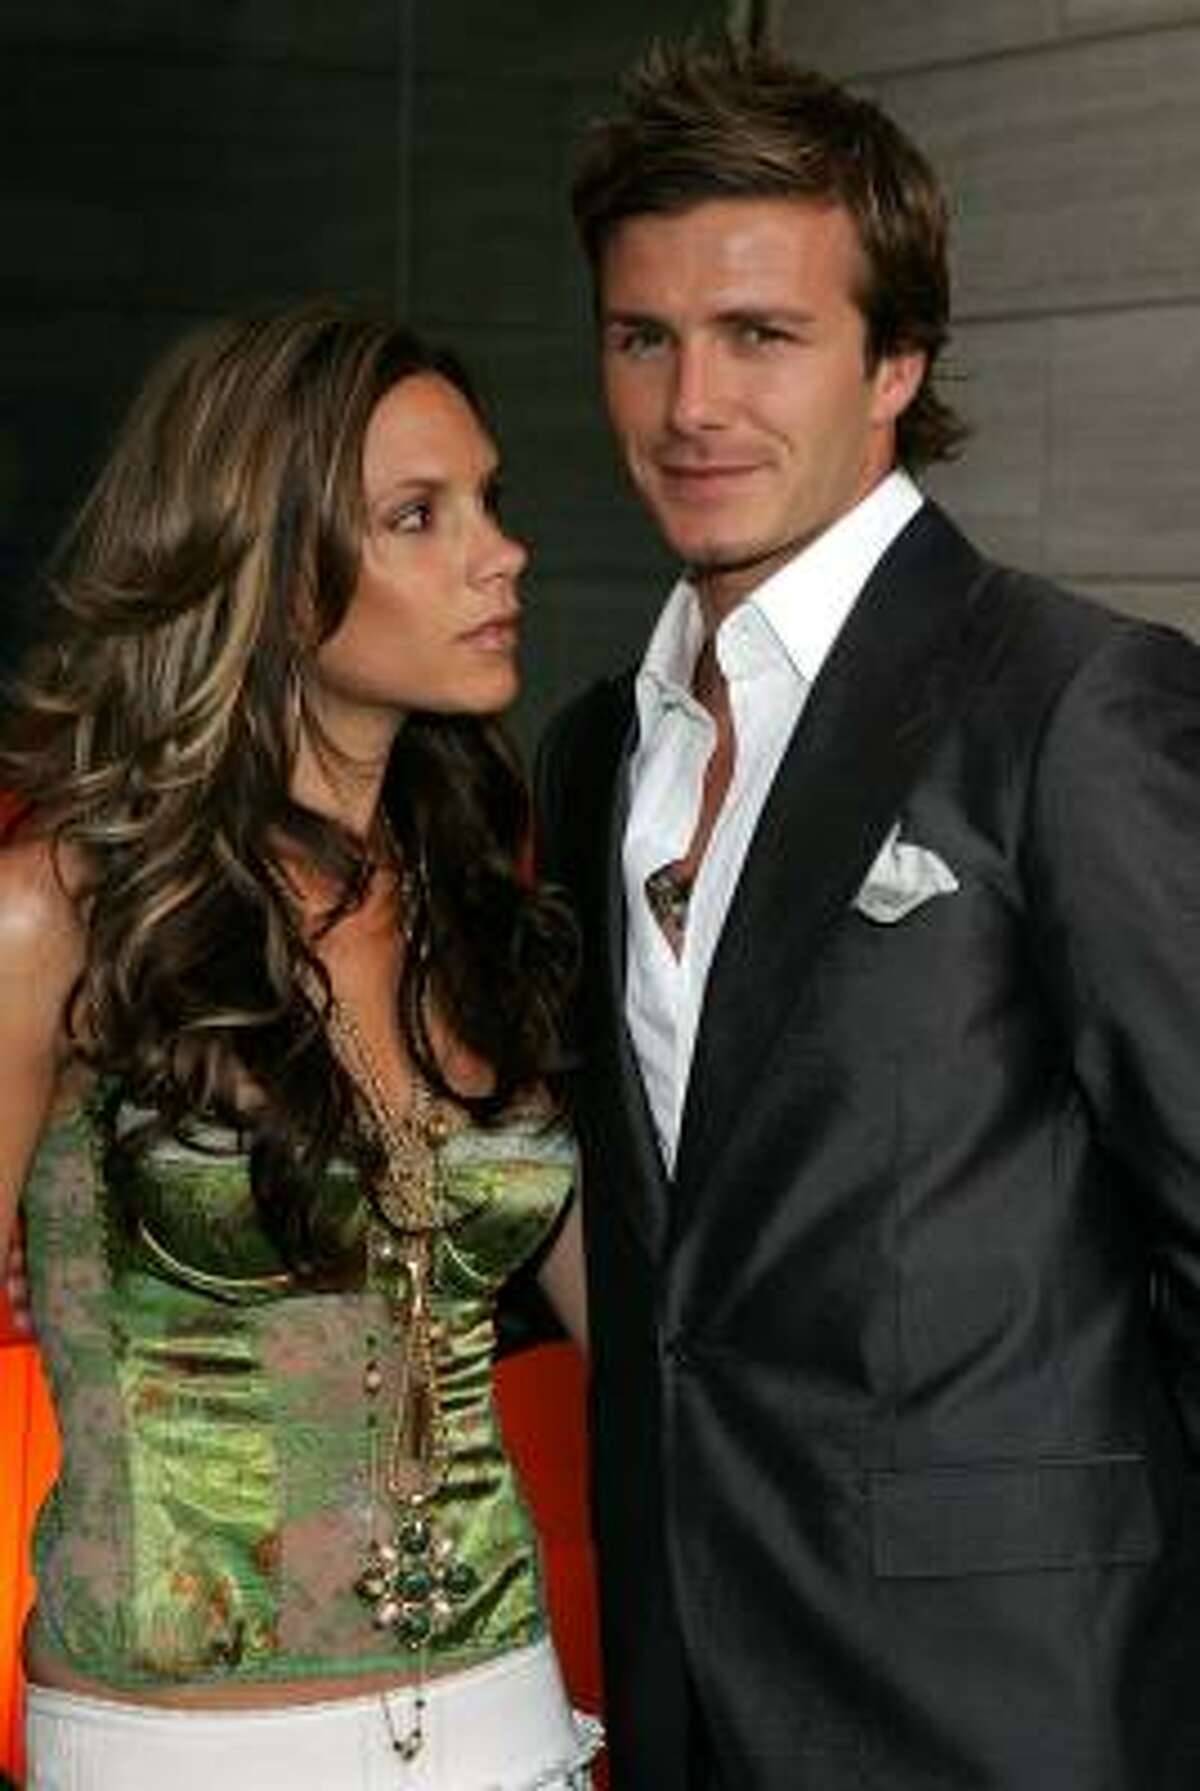 David Beckham married the Spice Girls' Posh, Victoria Adams, in July 1999.